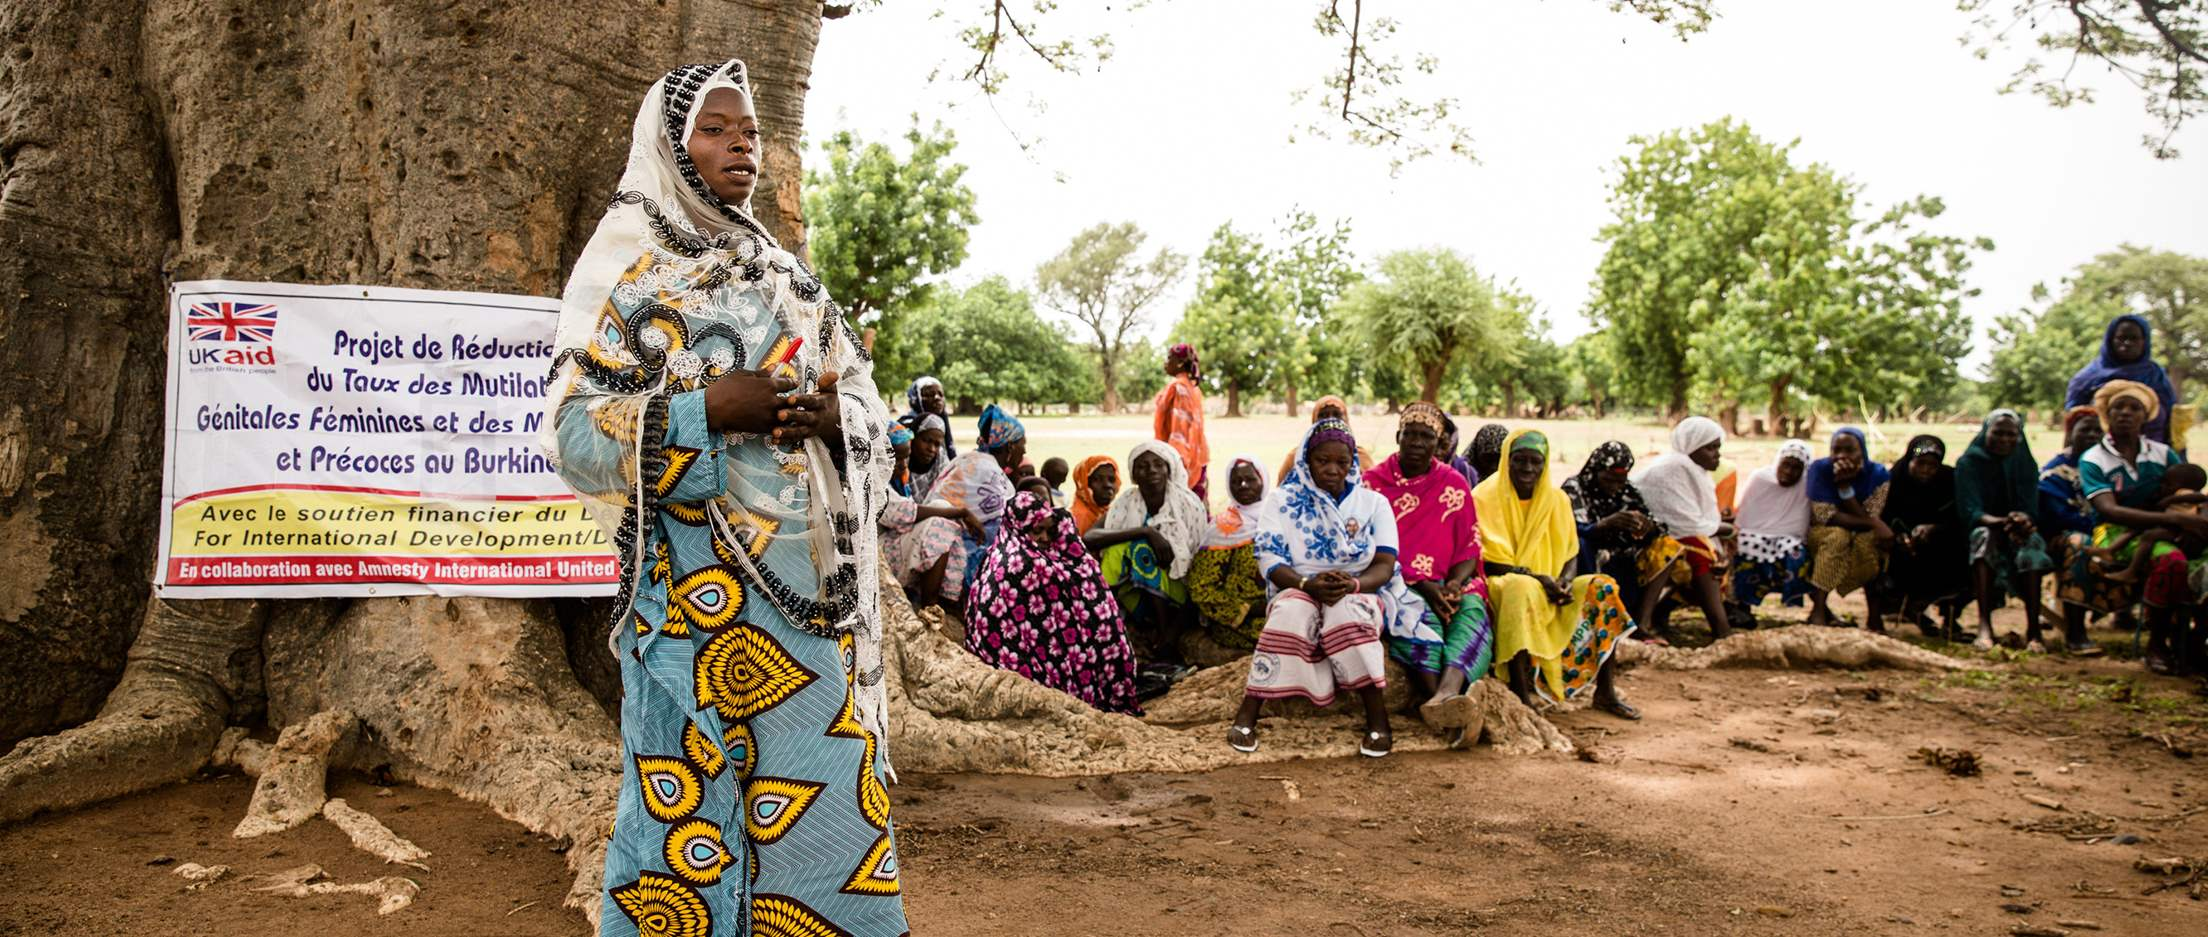 Sub-Saharan Africa: Government responses to COVID-19 should guarantee the protection of women and girls' rights